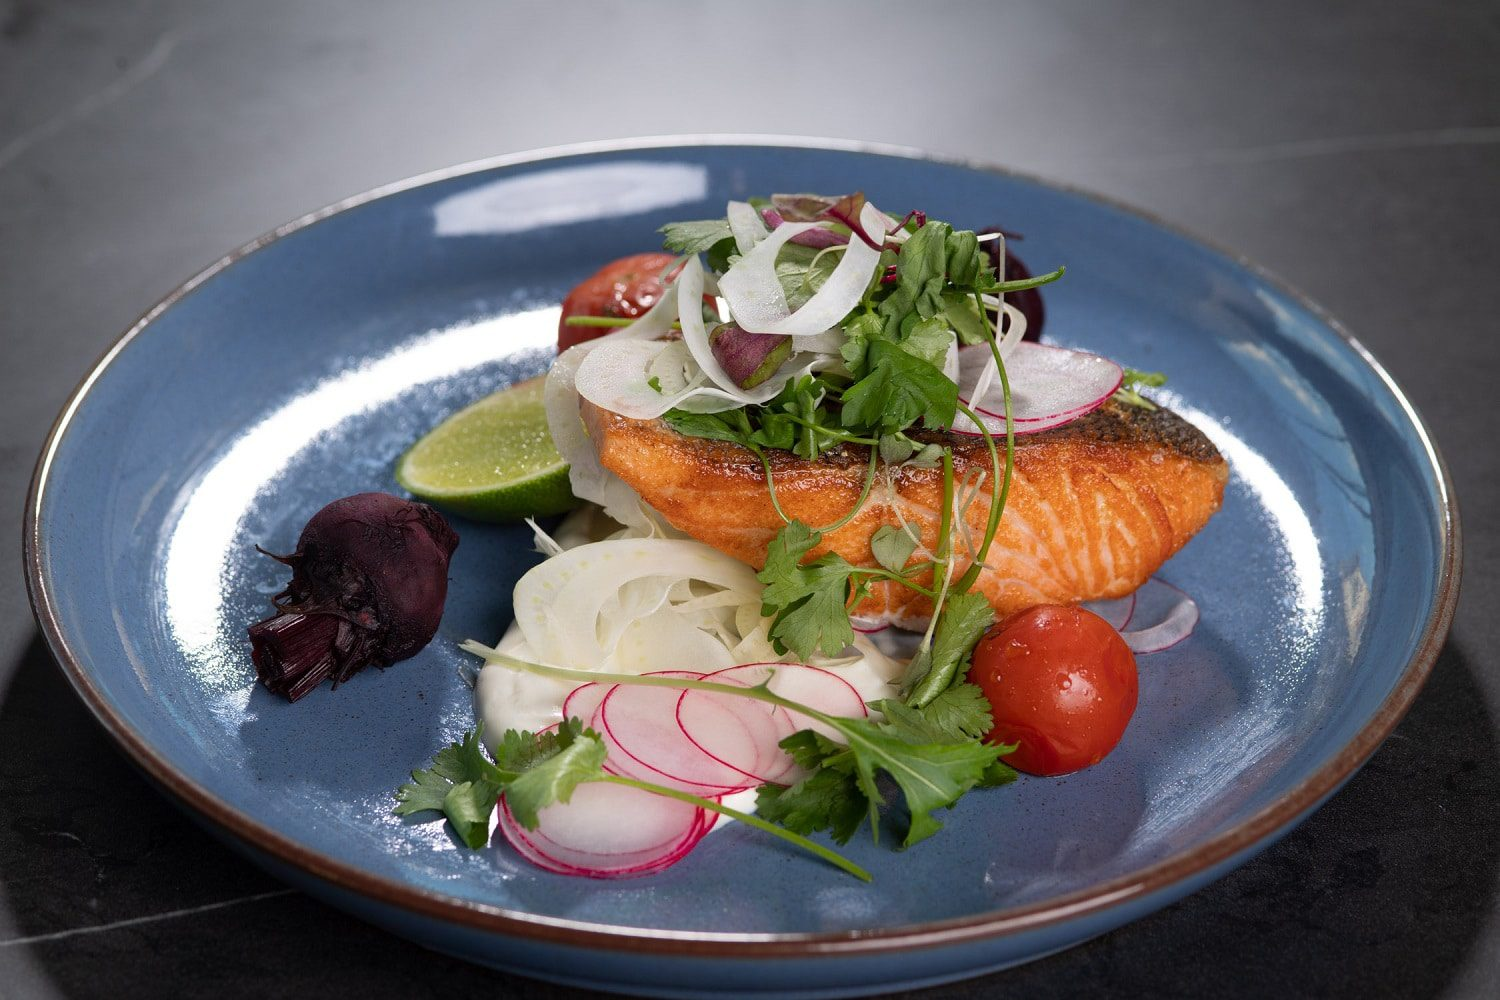 Salmon dish at Saros Bar and Dining in Moonee Ponds